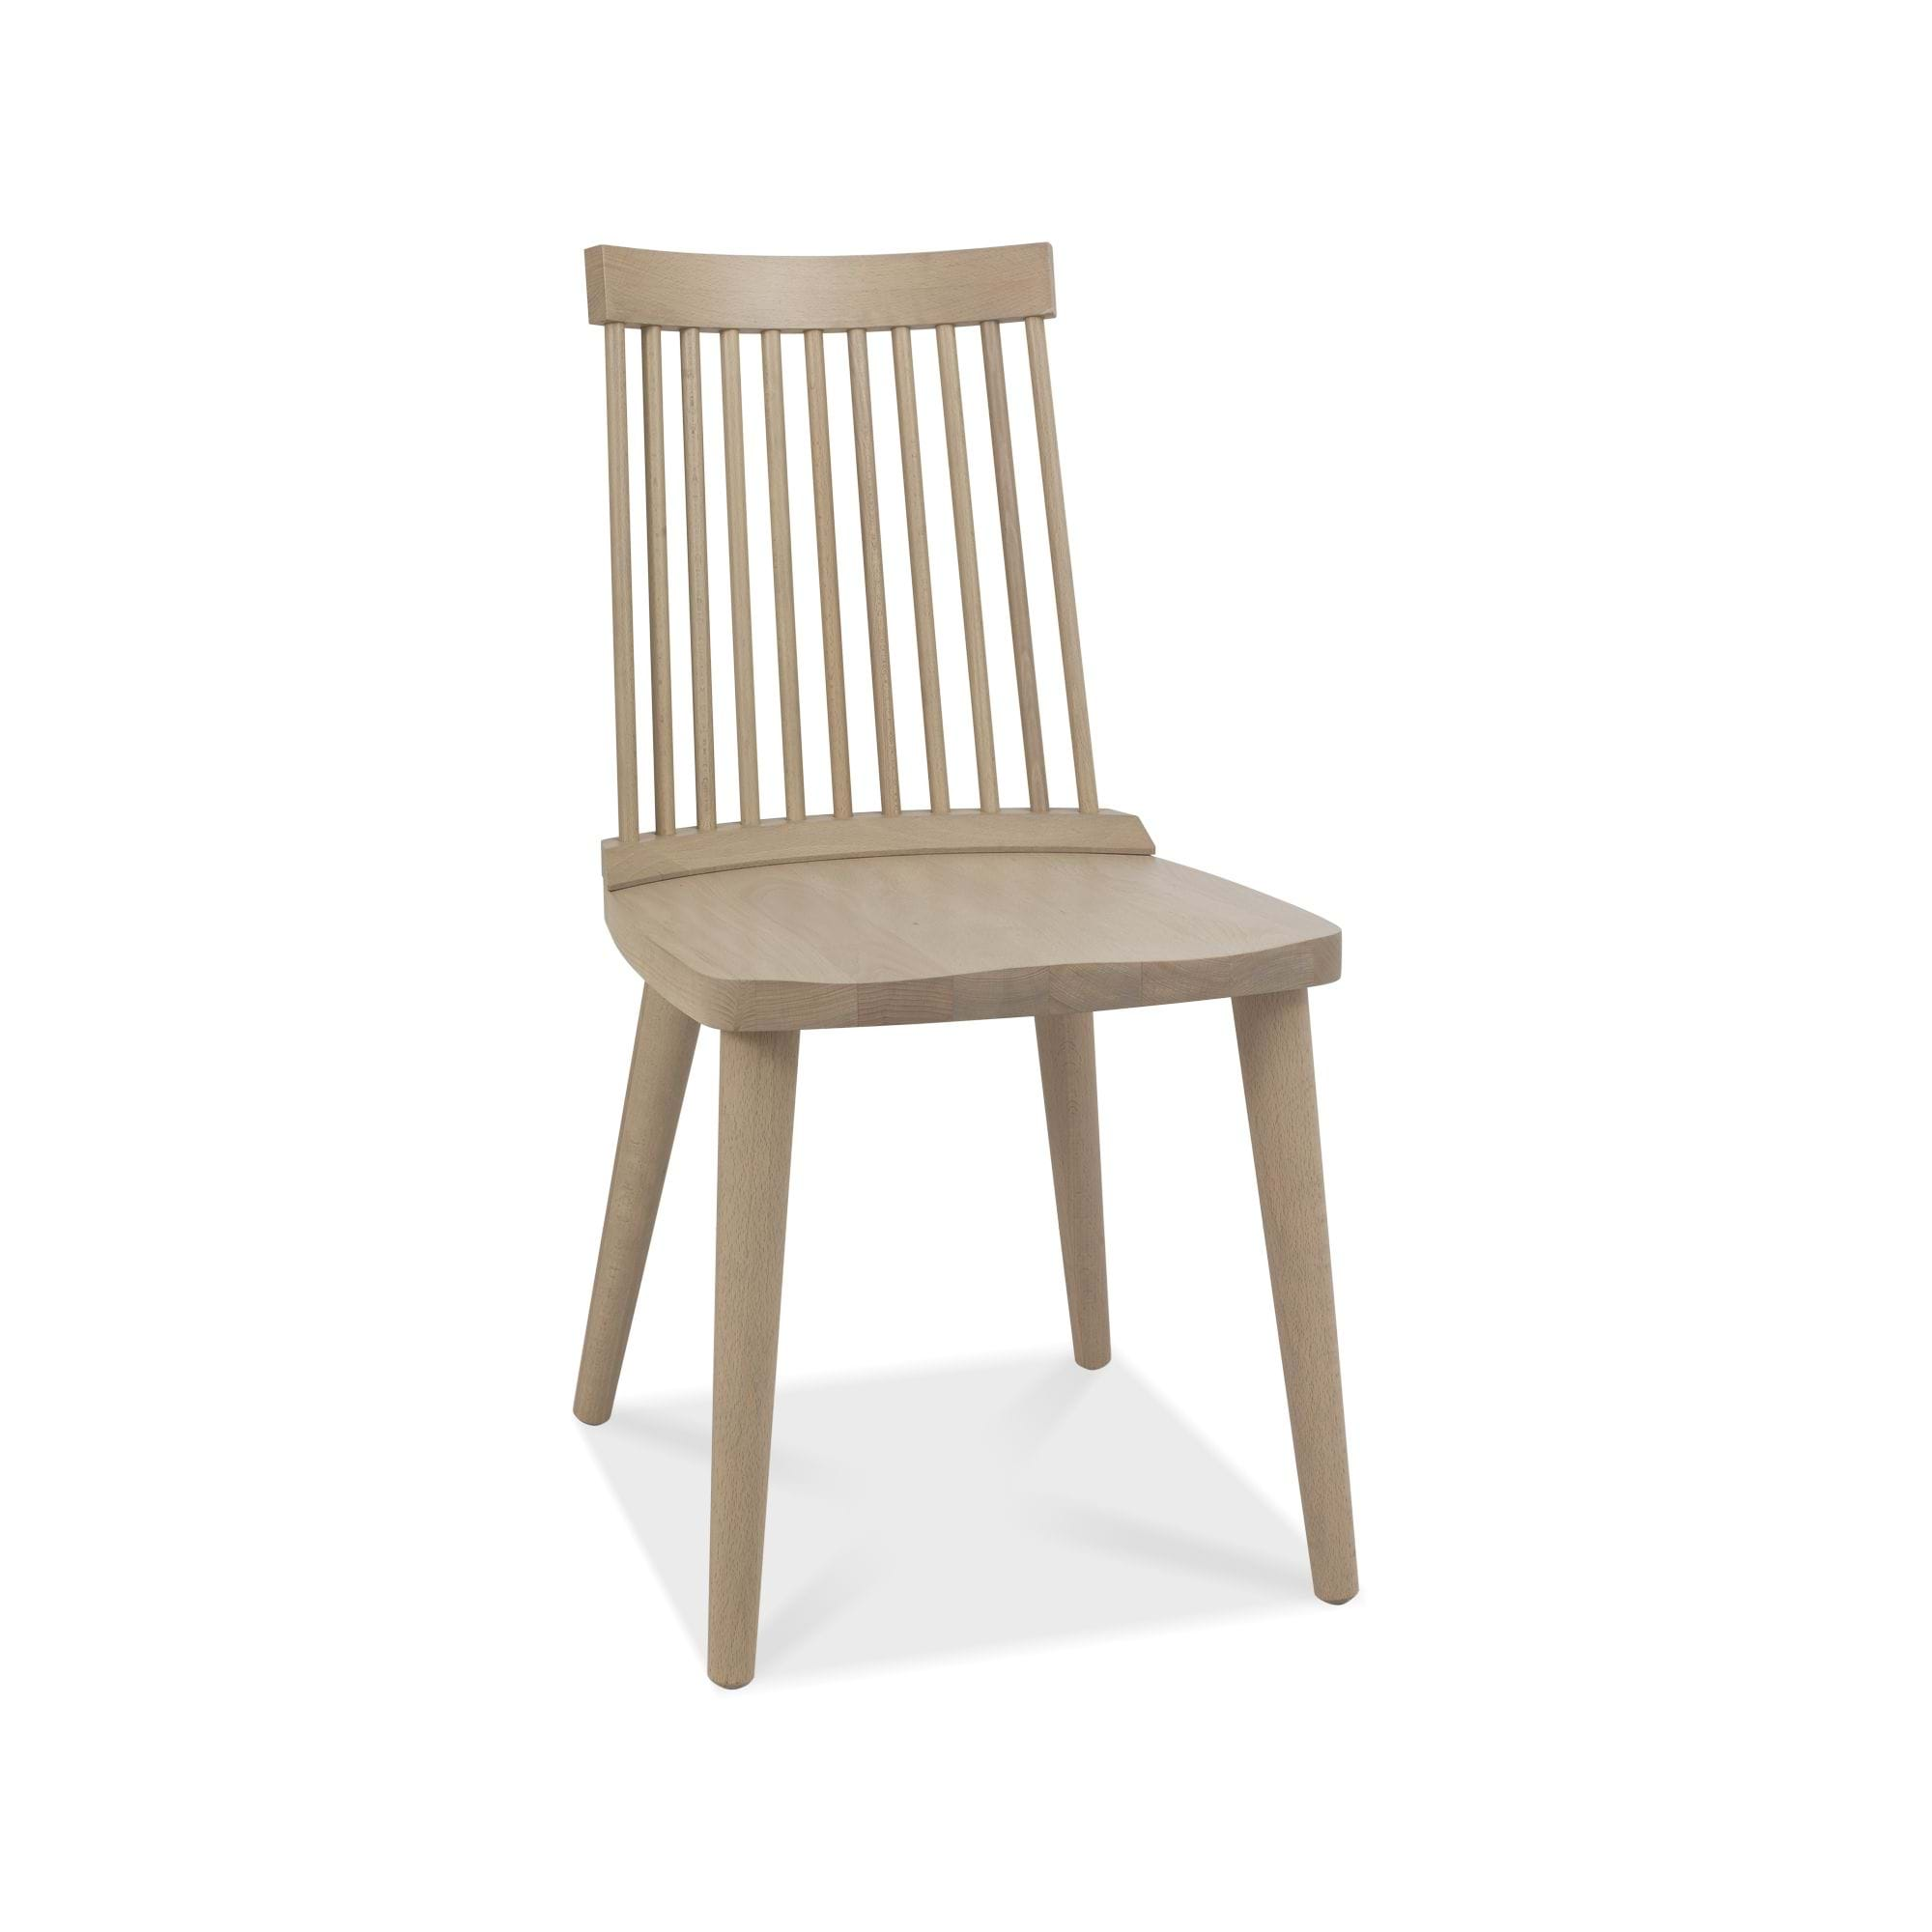 Image of Casa Ottawa Spindle Back Dining Chair